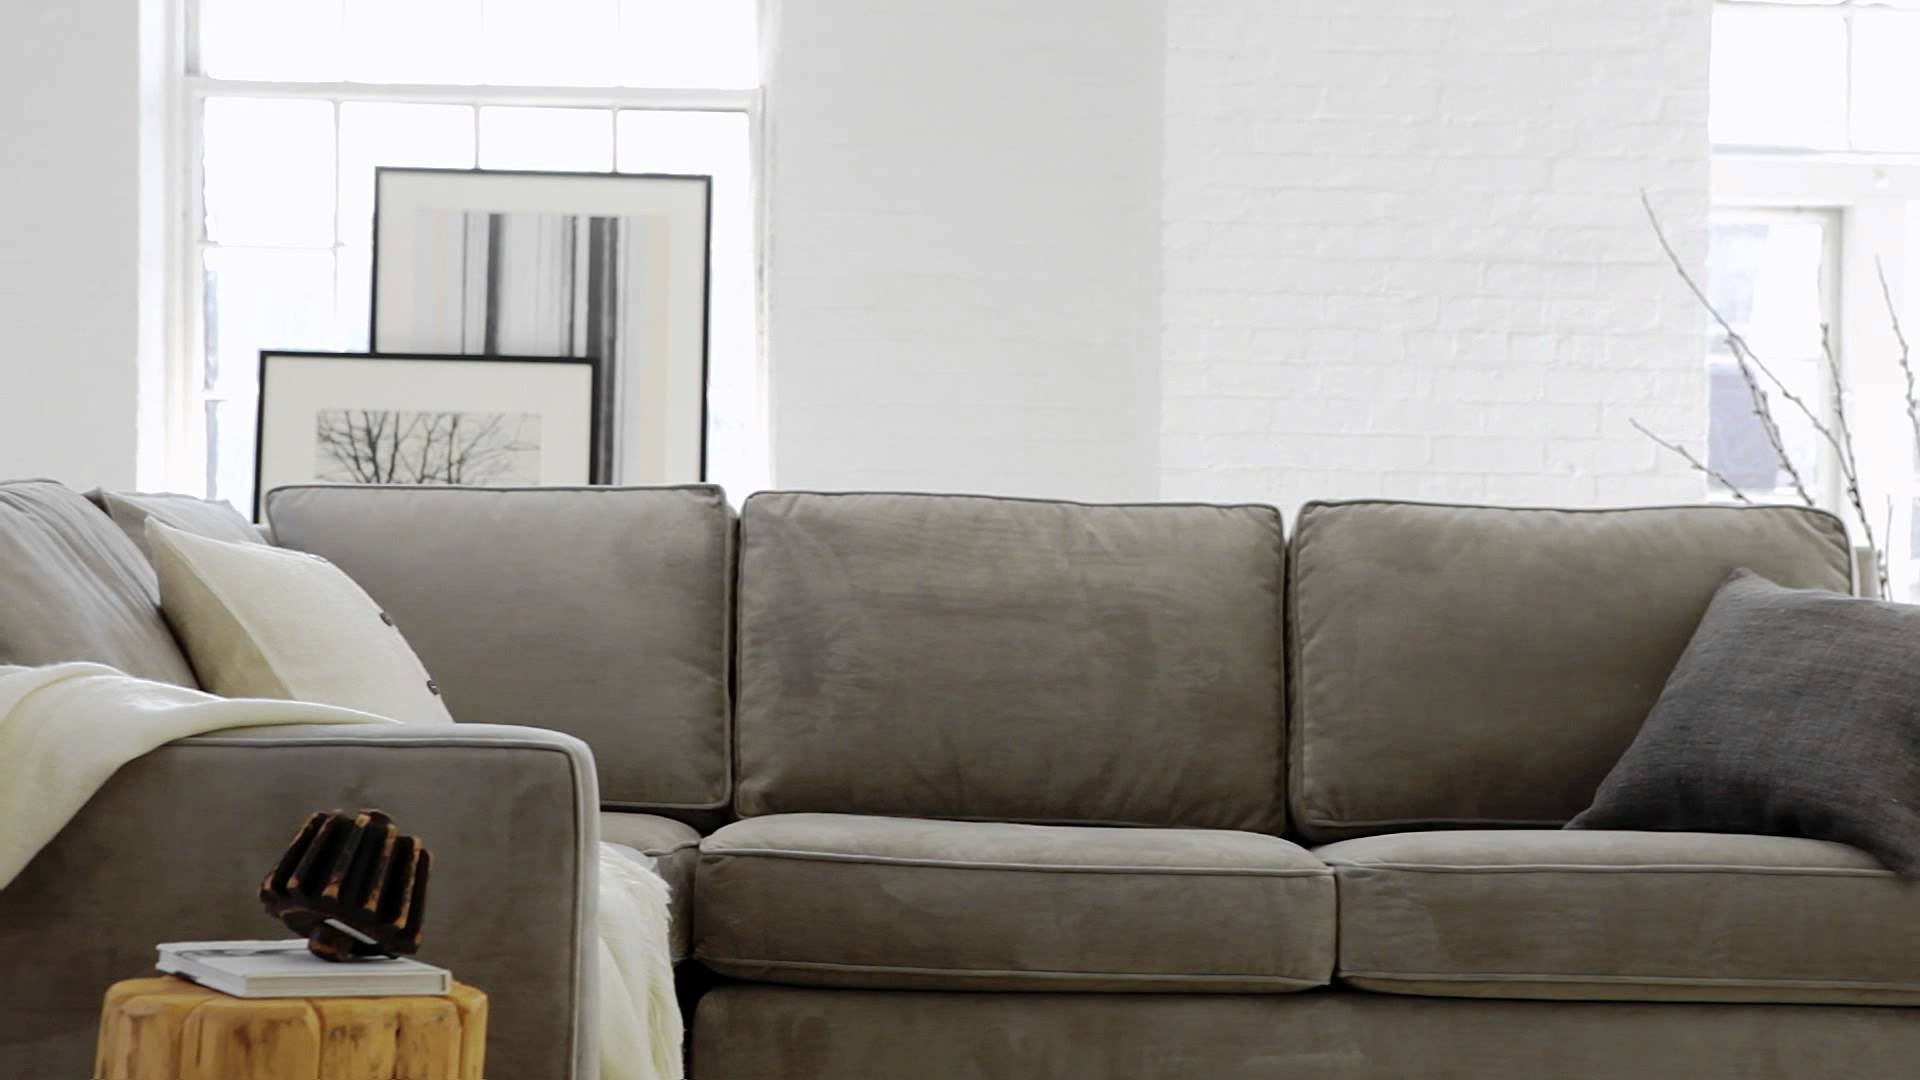 West Elm Sectional Sofas Within Latest The Henry Collection: Classic, Contemporary Living Room Furniture (View 18 of 20)